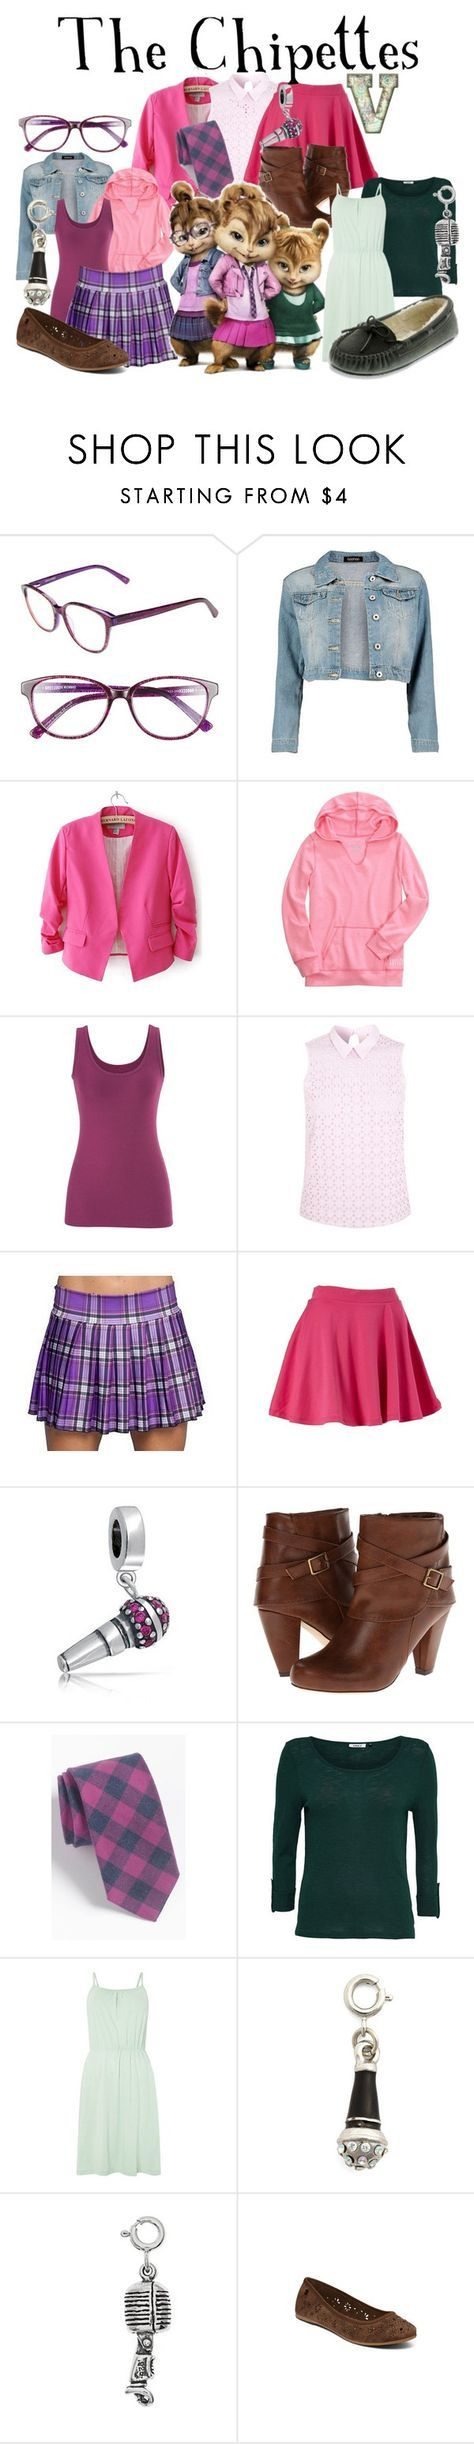 """""""The Chipettes - Jeanette, Brittany, Eleanor (Alvin and the Chipmunks)"""" by fabfandoms ❤ liked on Polyvore featuring Corinne McCormack, Boohoo, maurices, Miss Selfridge, Bling Jewelry, Madden Girl, Gitman Bros., Vero Moda, Roxy and Minnetonka"""